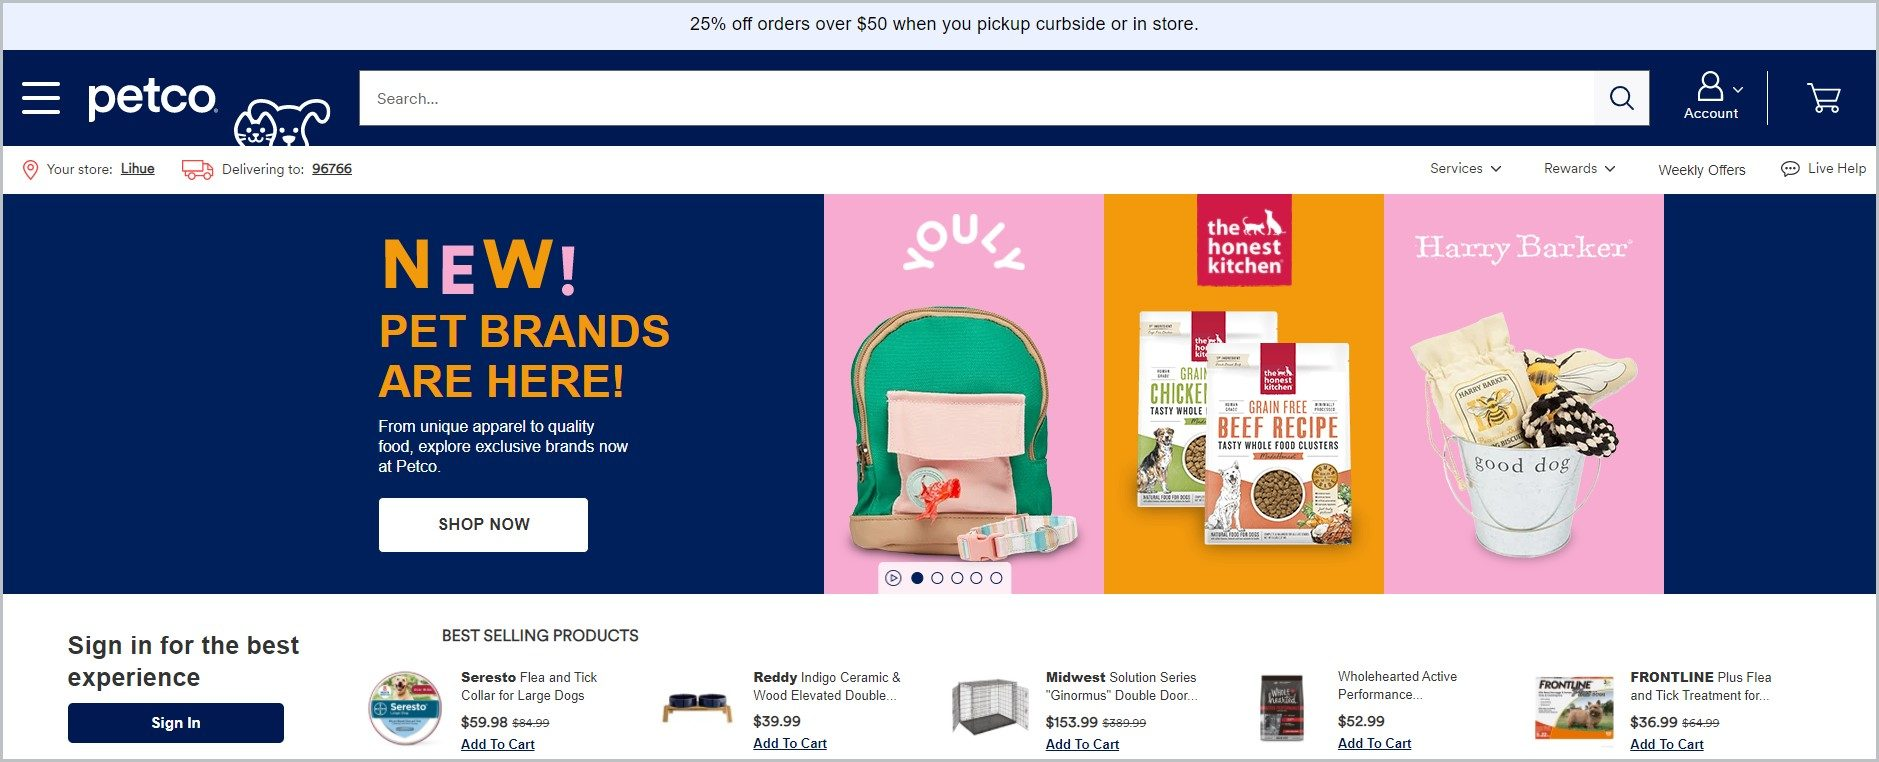 screenshot of Petco homepage showcasing different products